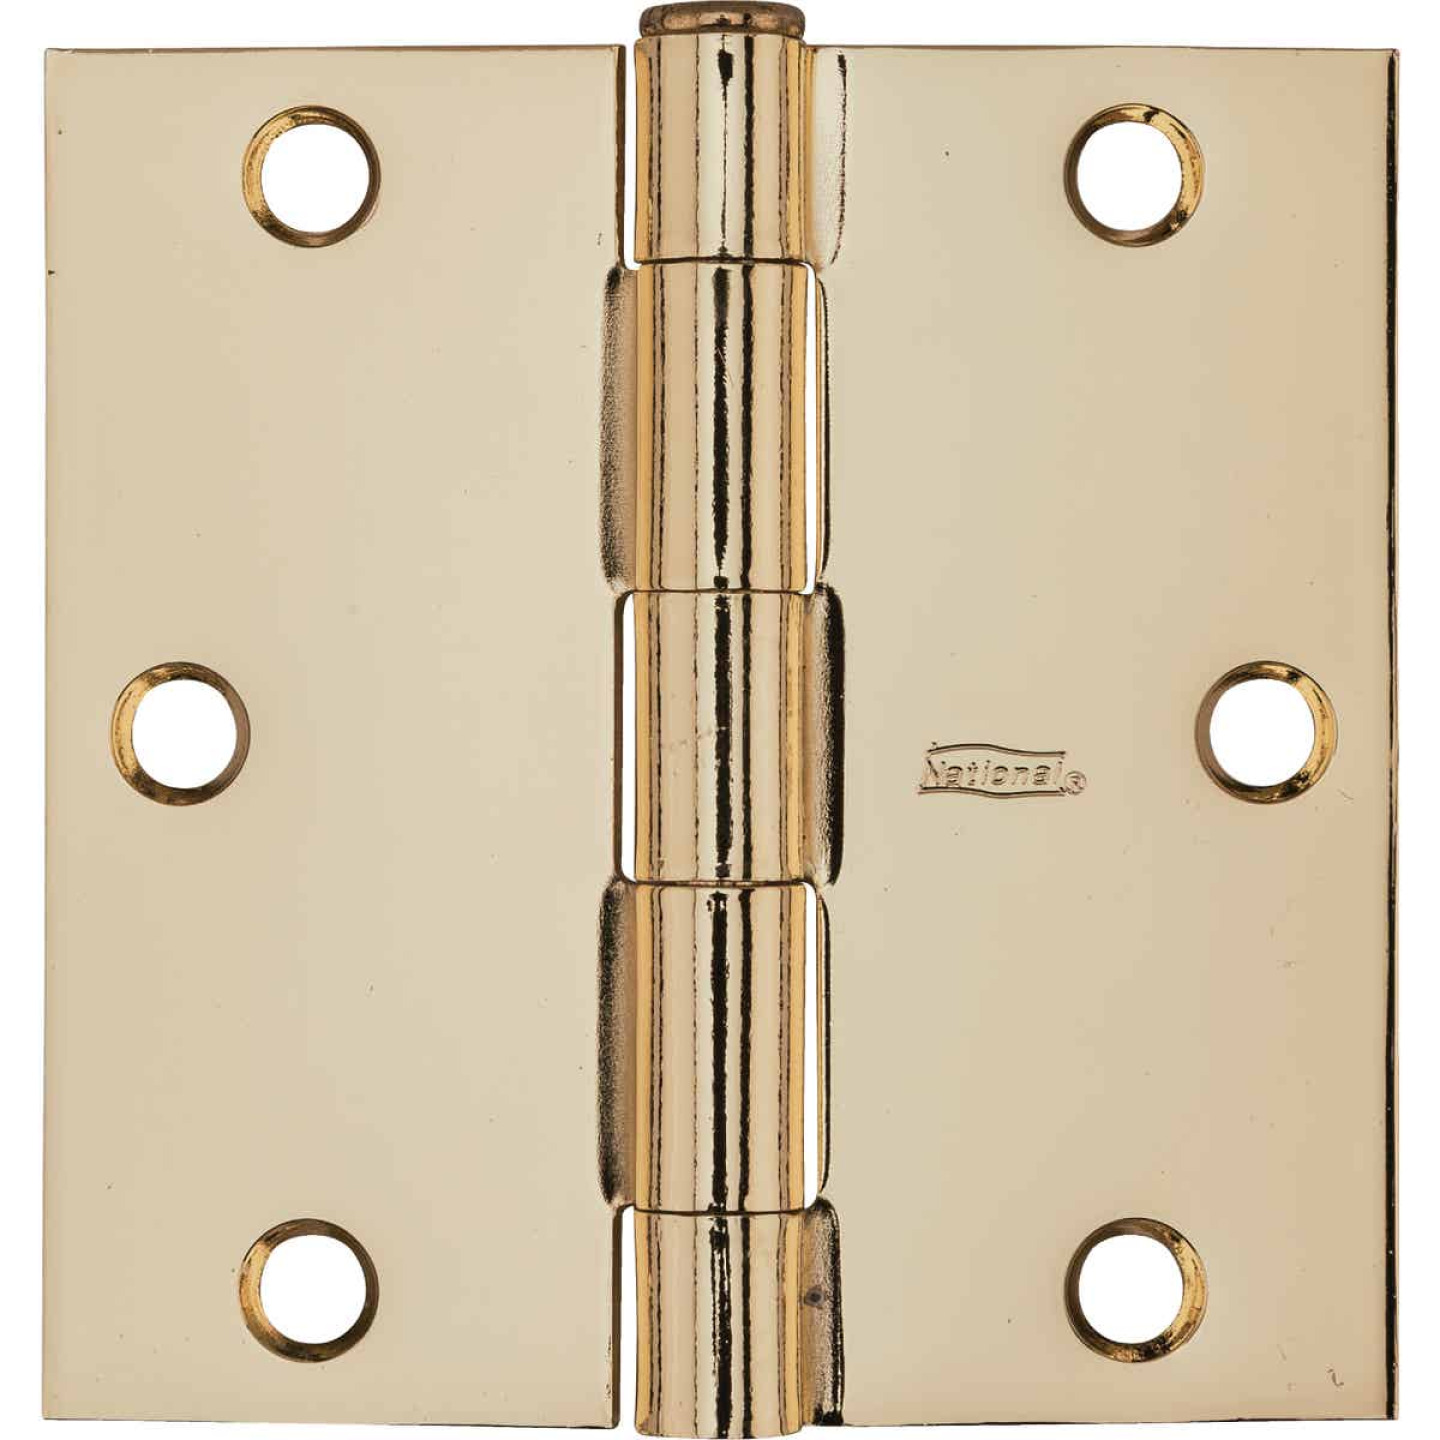 National 3-1/2 In. Square Polished Brass Door Hinge Image 2